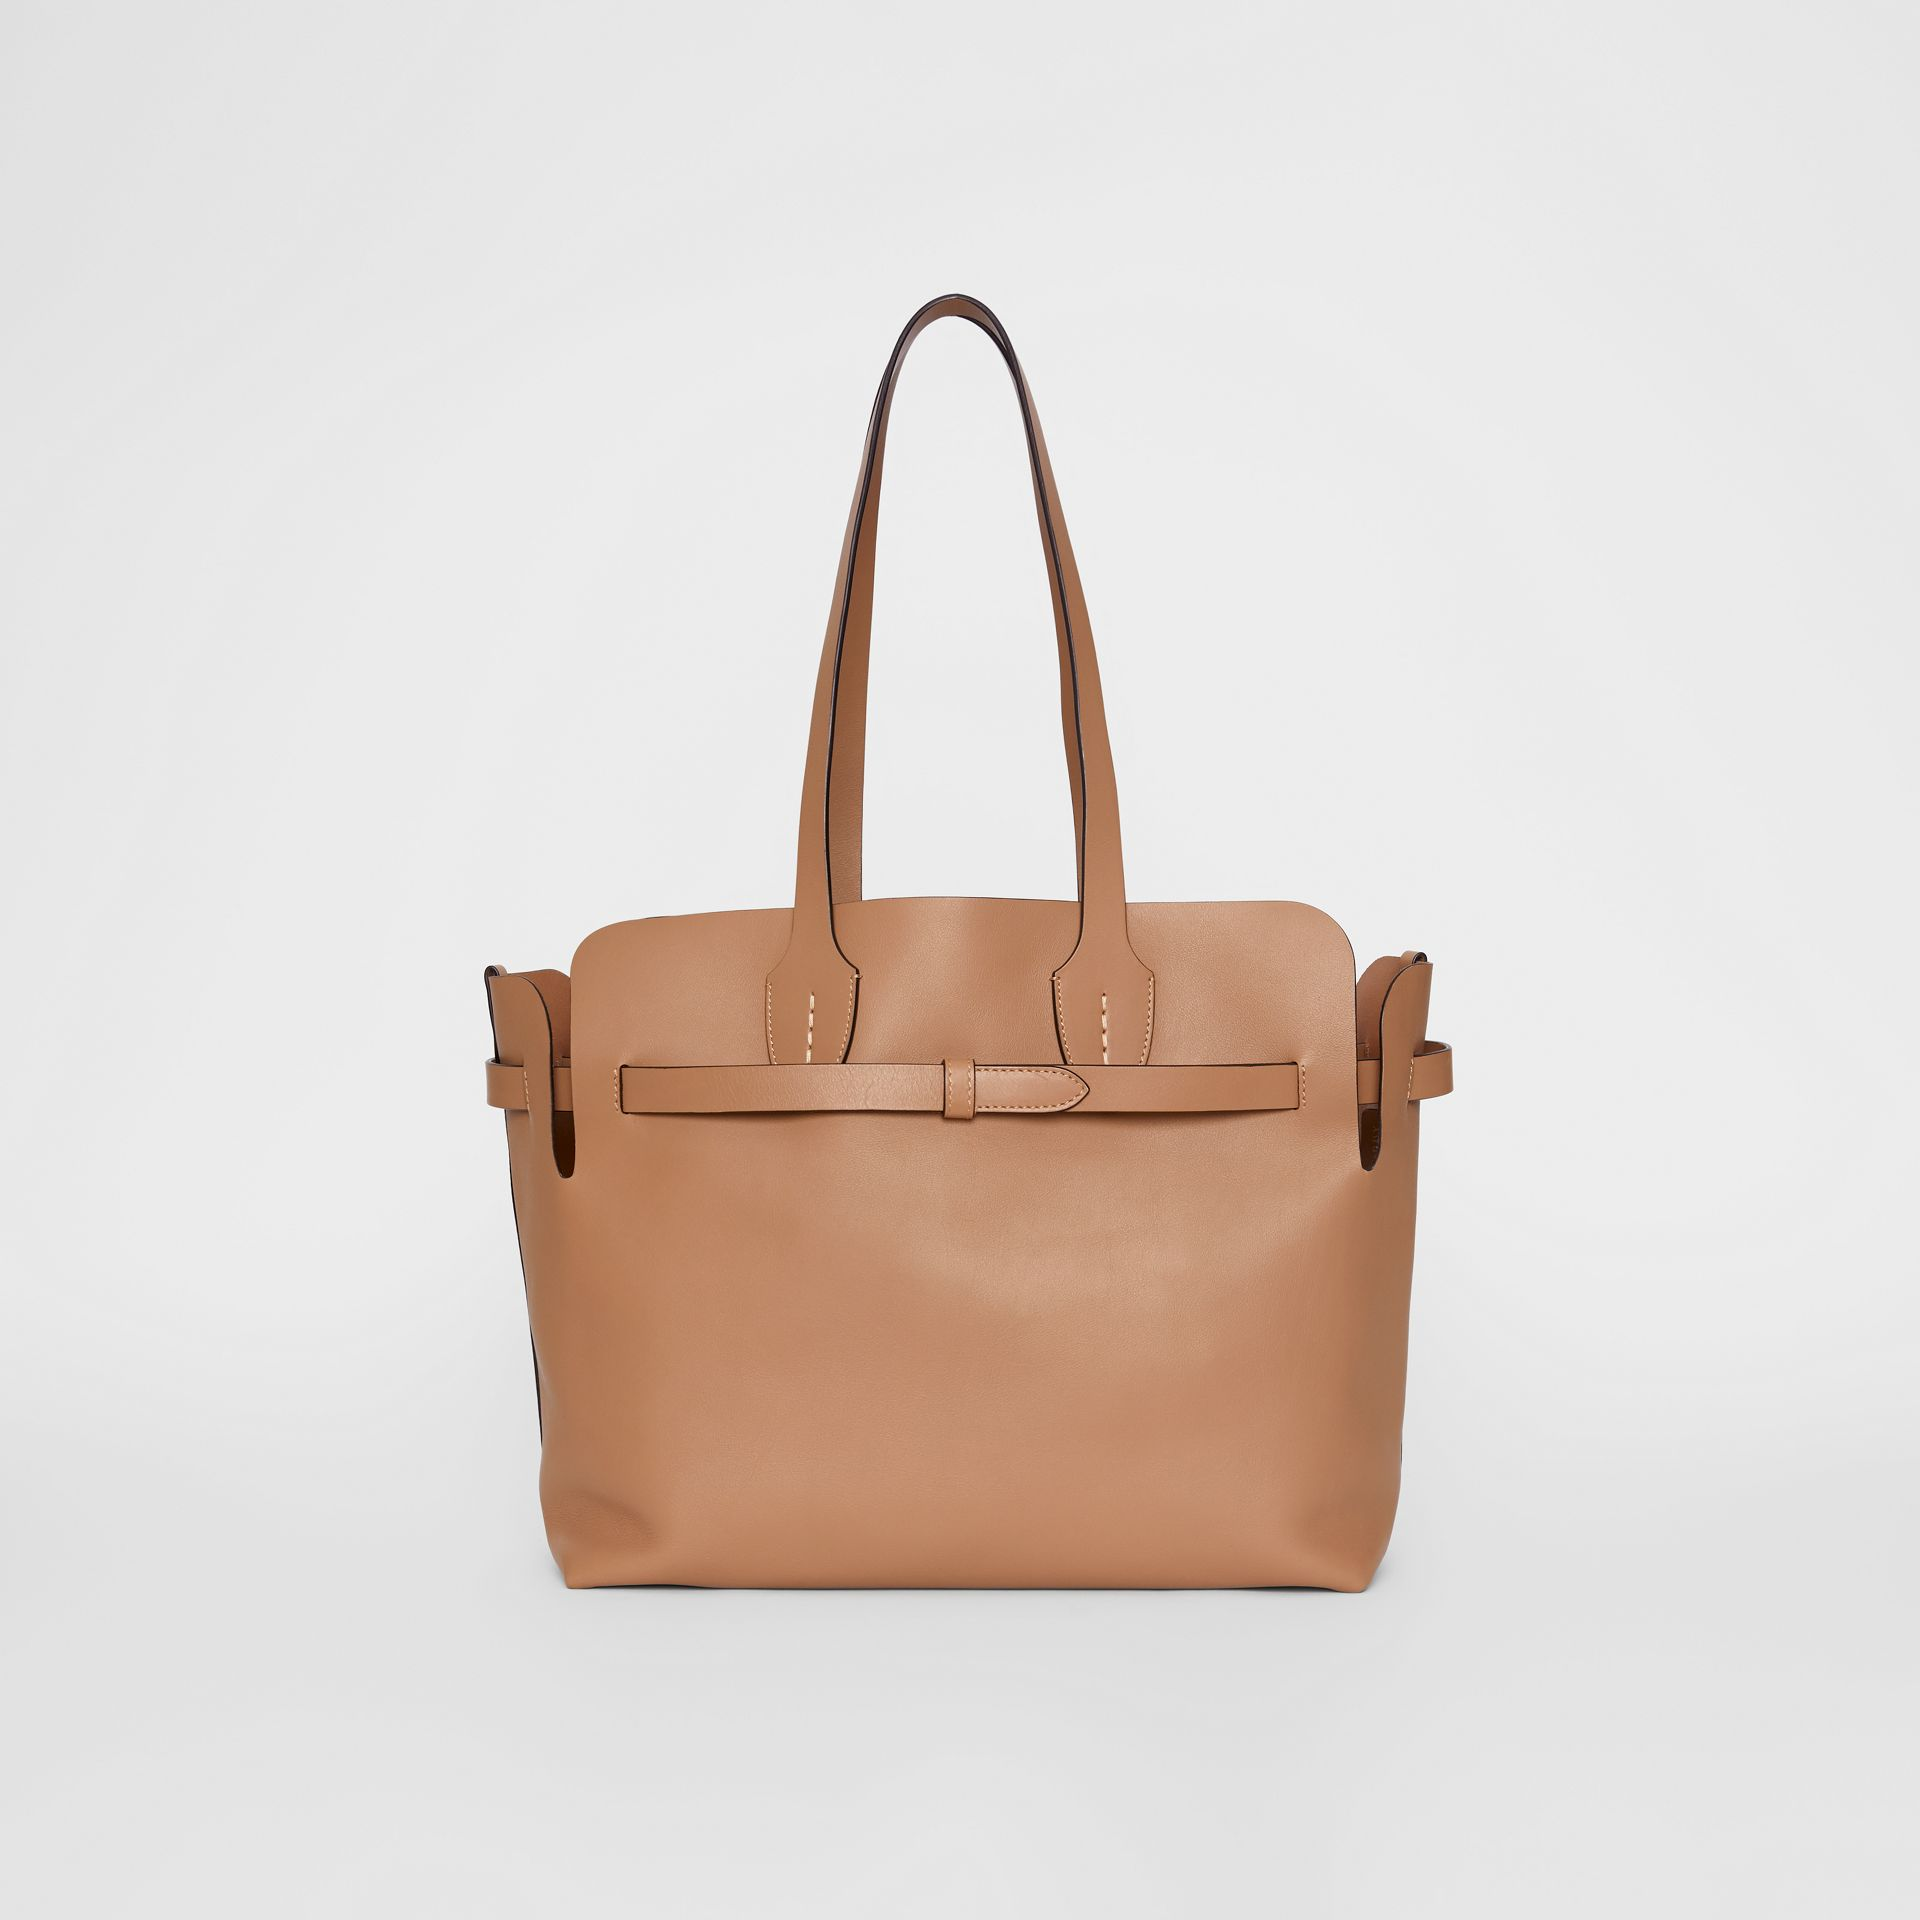 Sac The Belt moyen en cuir doux (Camel Clair) - Femme | Burberry - photo de la galerie 7